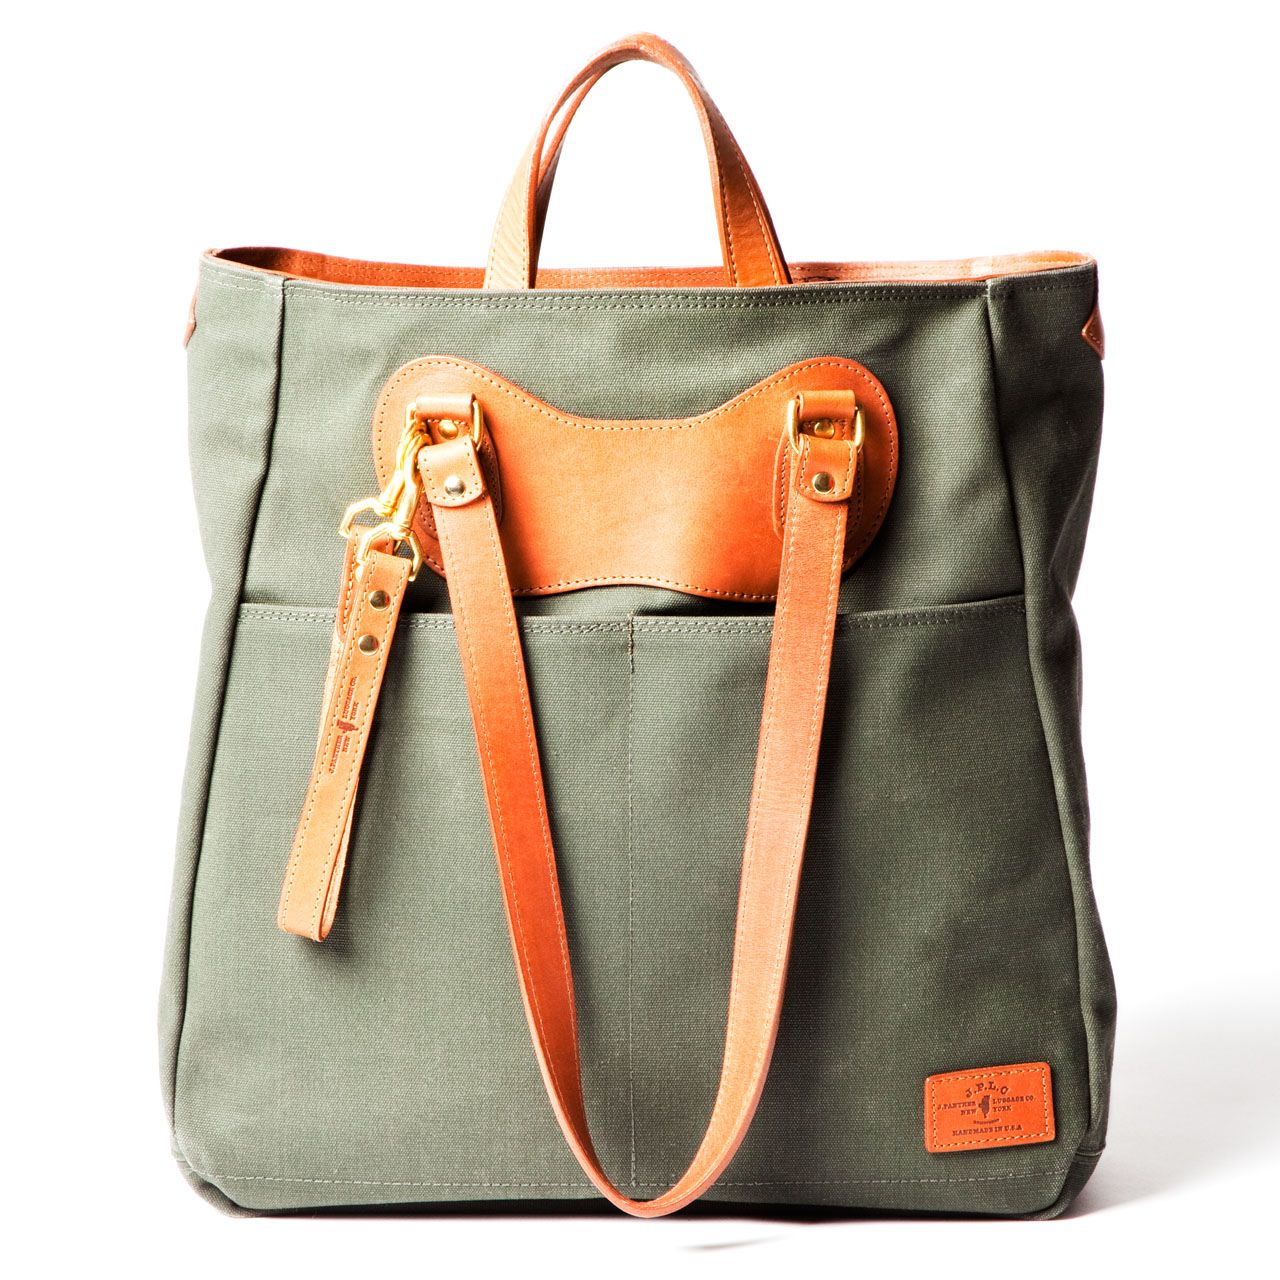 c71c66e0a7f RucTote in olive canvas with tan leather trim